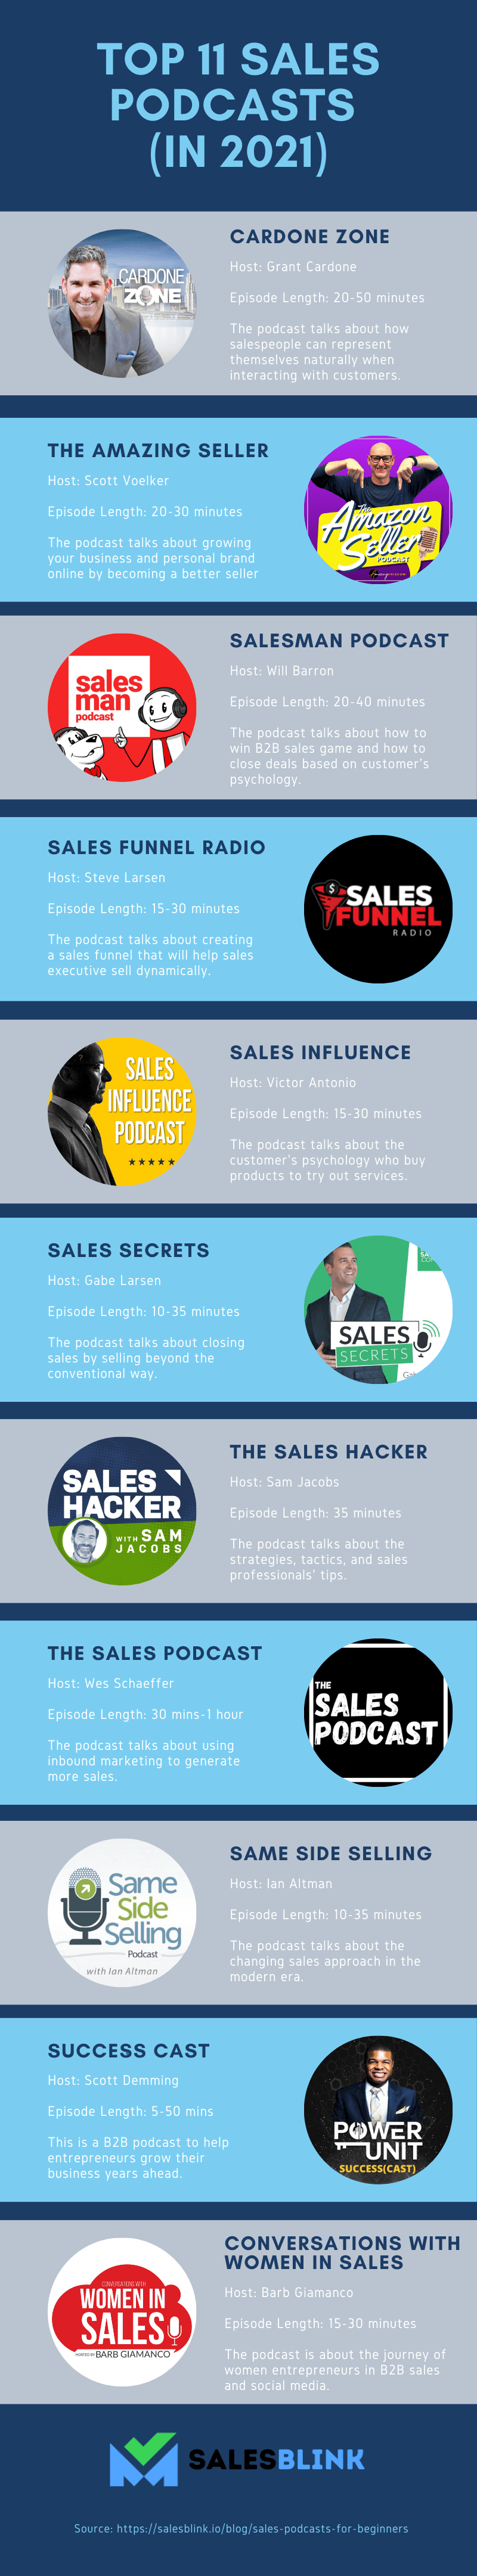 an infographic of the top 11 sales podcasts in 2021 with the image of the podcasts and relevant information